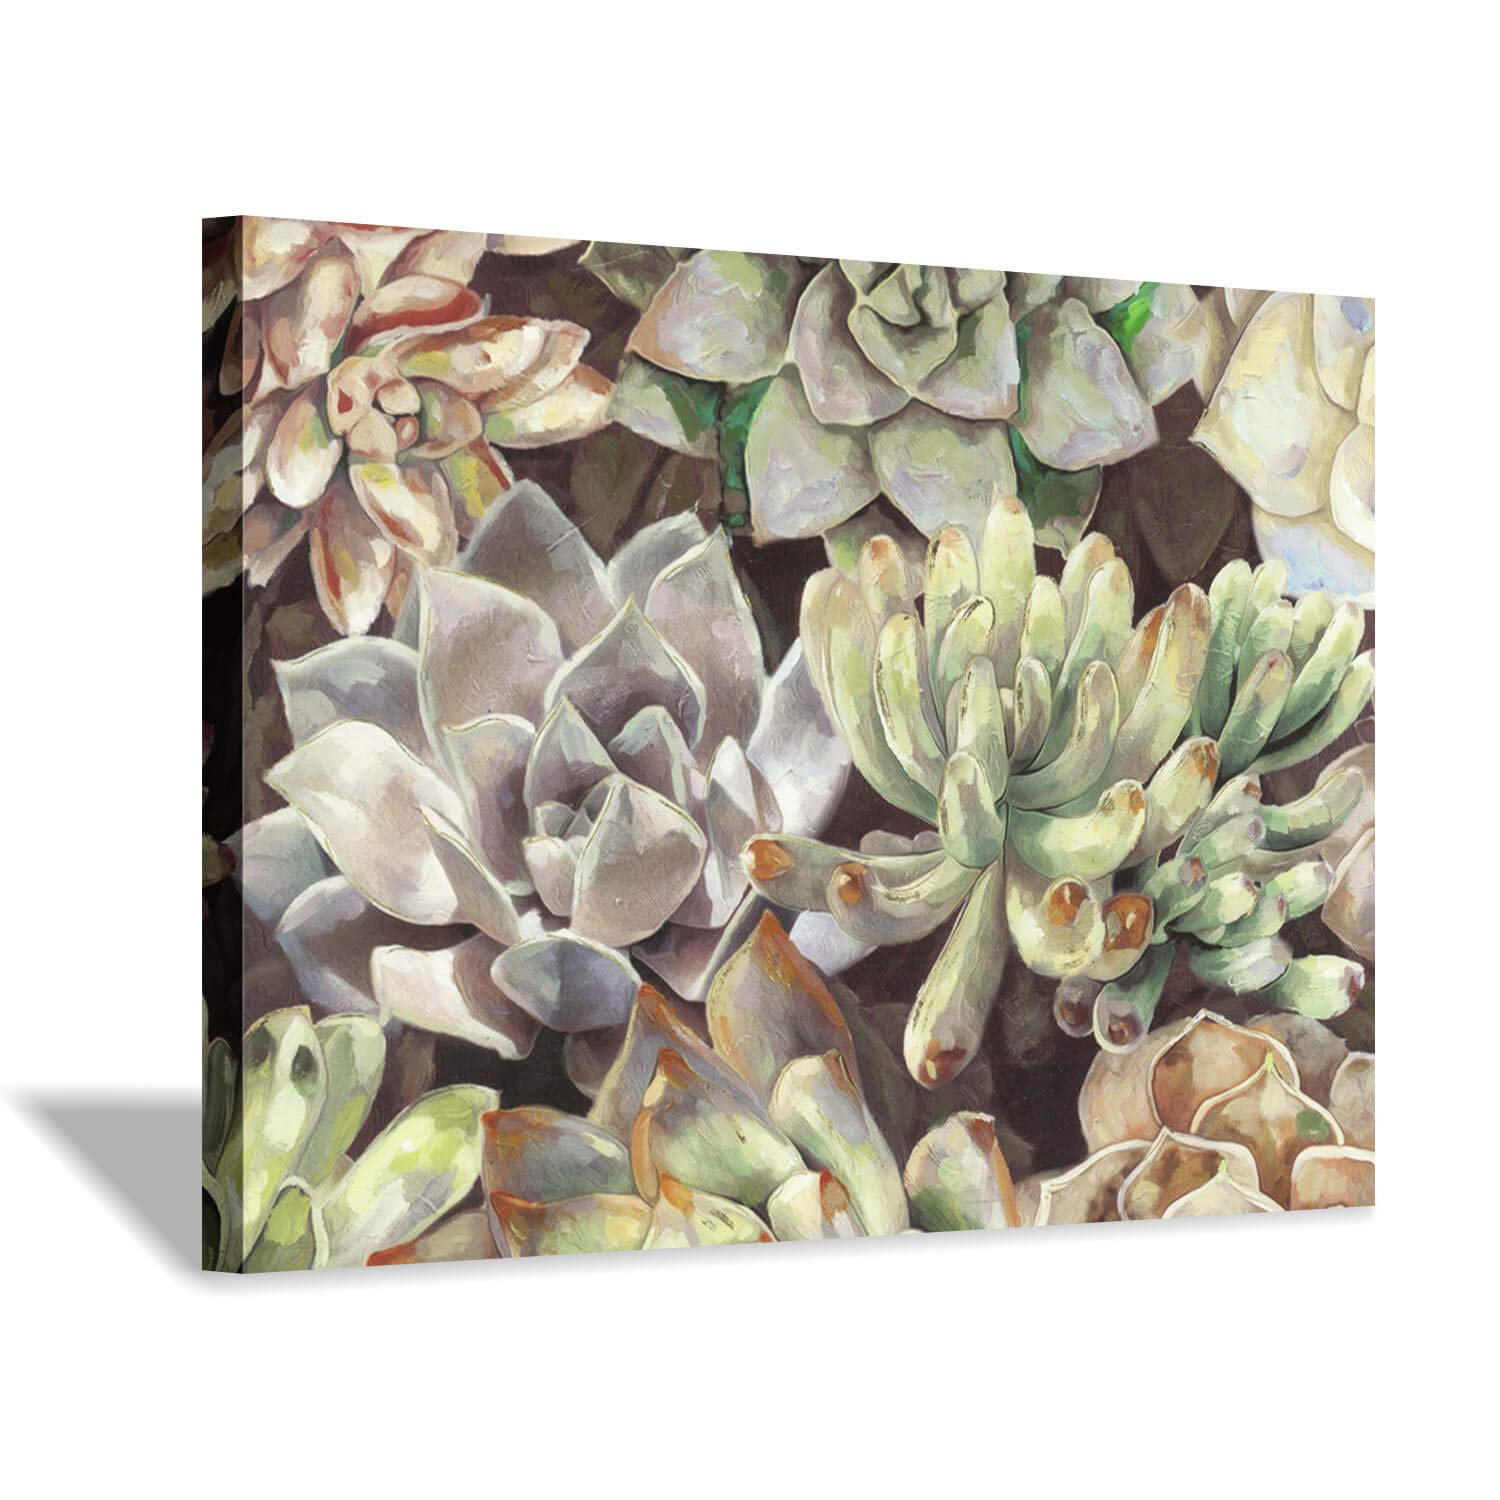 Floral Succulents Canvas Wall Art: Botanical Artwork Painting Print on Wrapped Canvas for Bedroom(36''x24'')